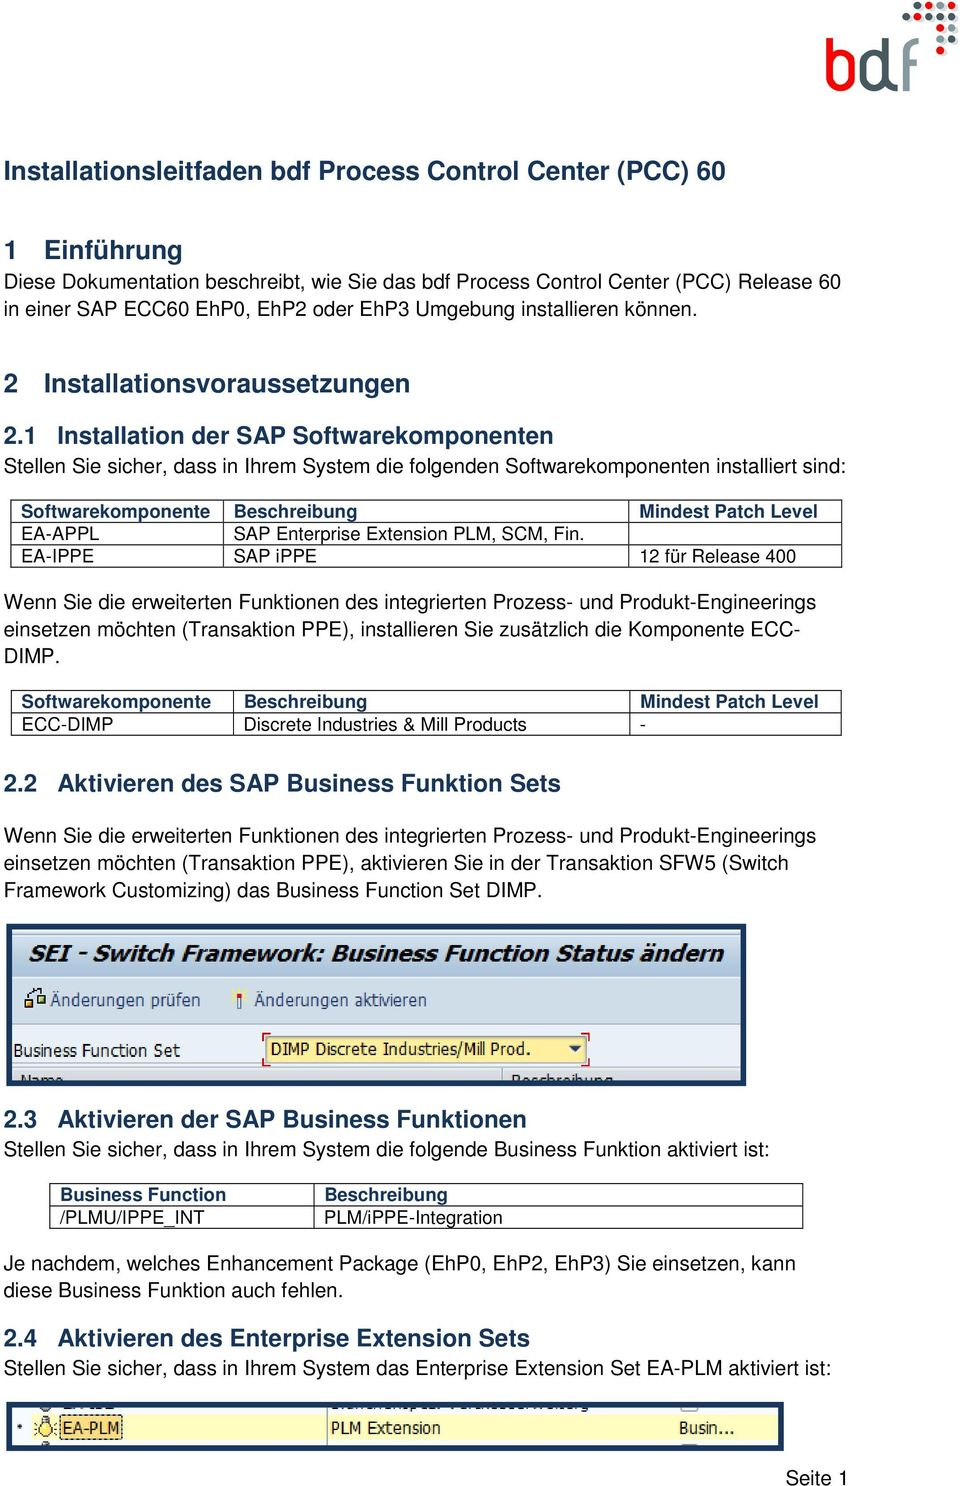 1 Installation der SAP Softwarekomponenten Stellen Sie sicher, dass in Ihrem System die folgenden Softwarekomponenten installiert sind: Softwarekomponente Beschreibung Mindest Patch Level EA-APPL SAP